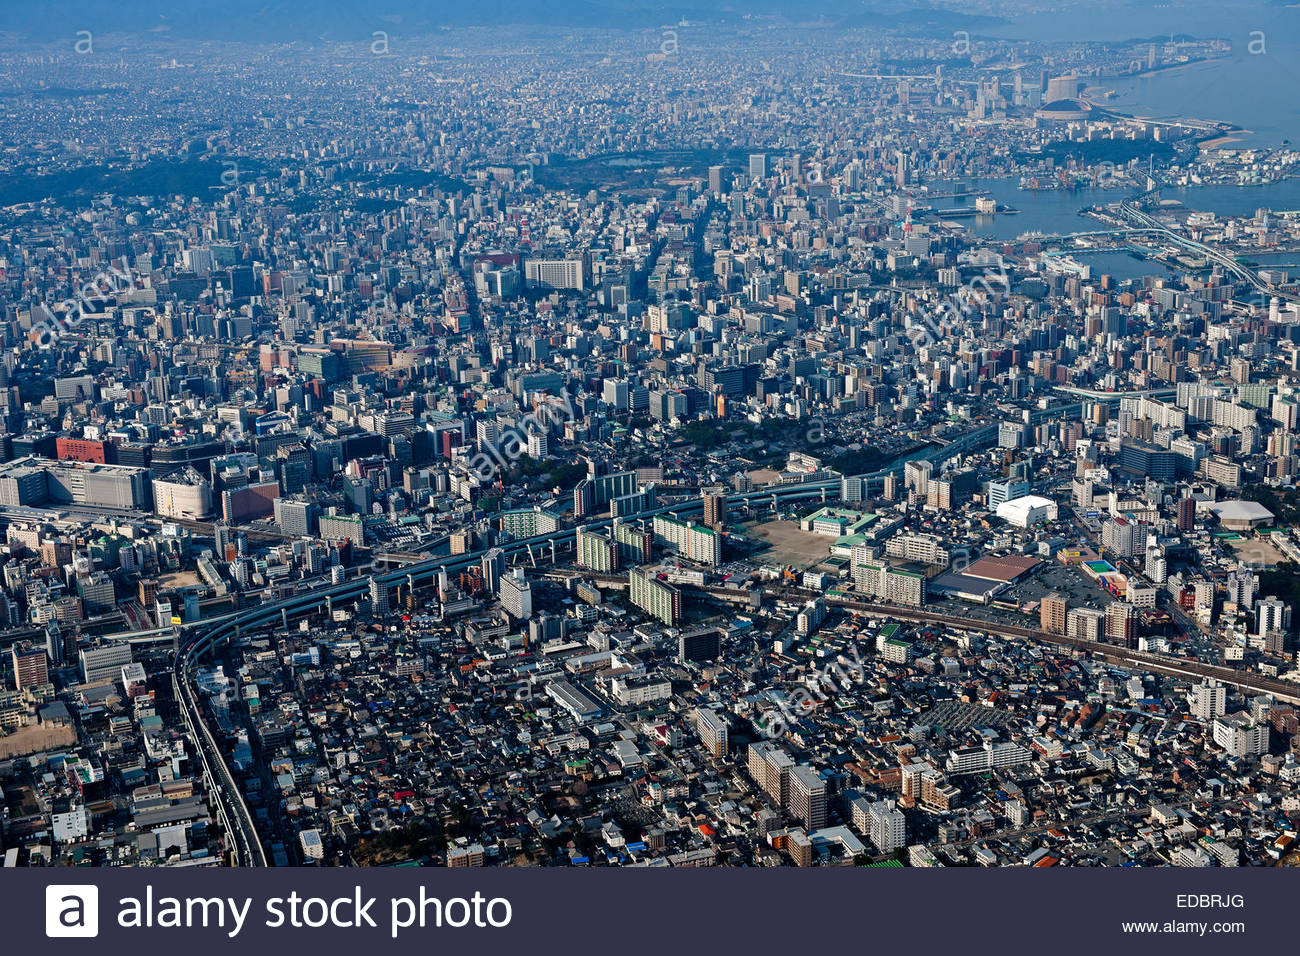 http://c8.alamy.com/comp/EDBRJG/aerial-view-of-god-hakata-bay-fukuoka-city-EDBRJG.jpg